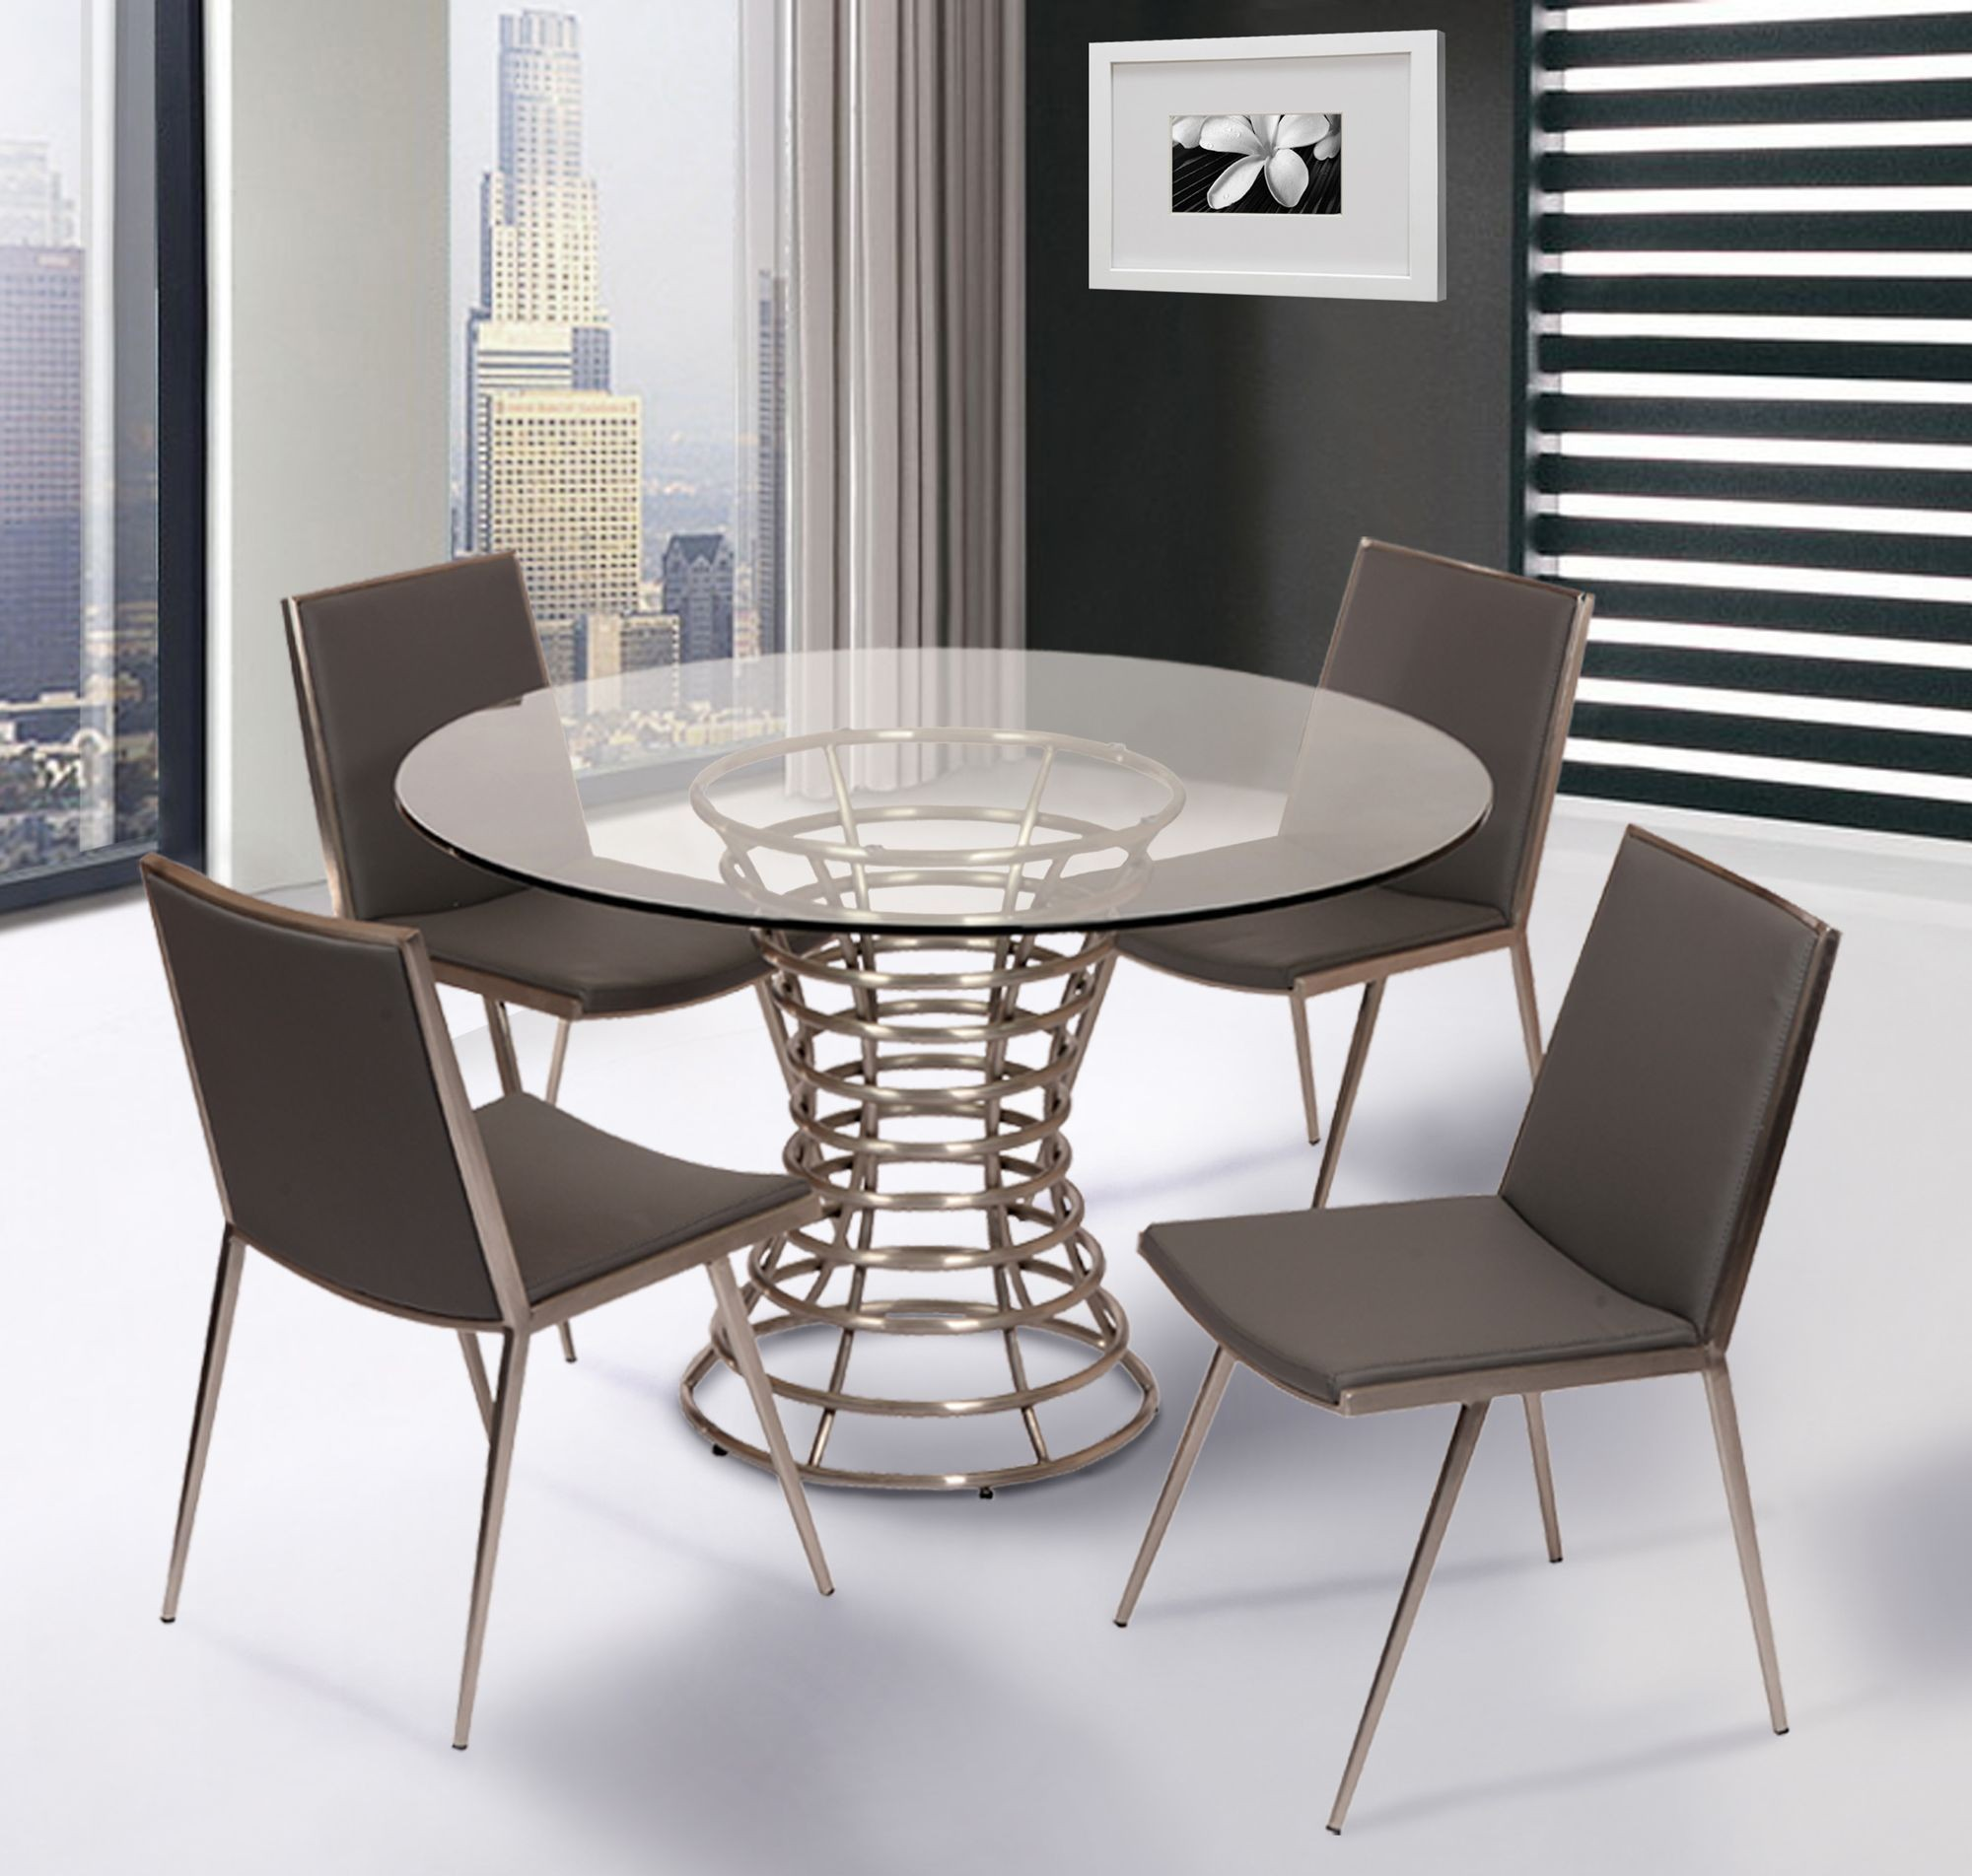 stainless steel chair hsn code danish modern dining ibiza brushed room set from armen